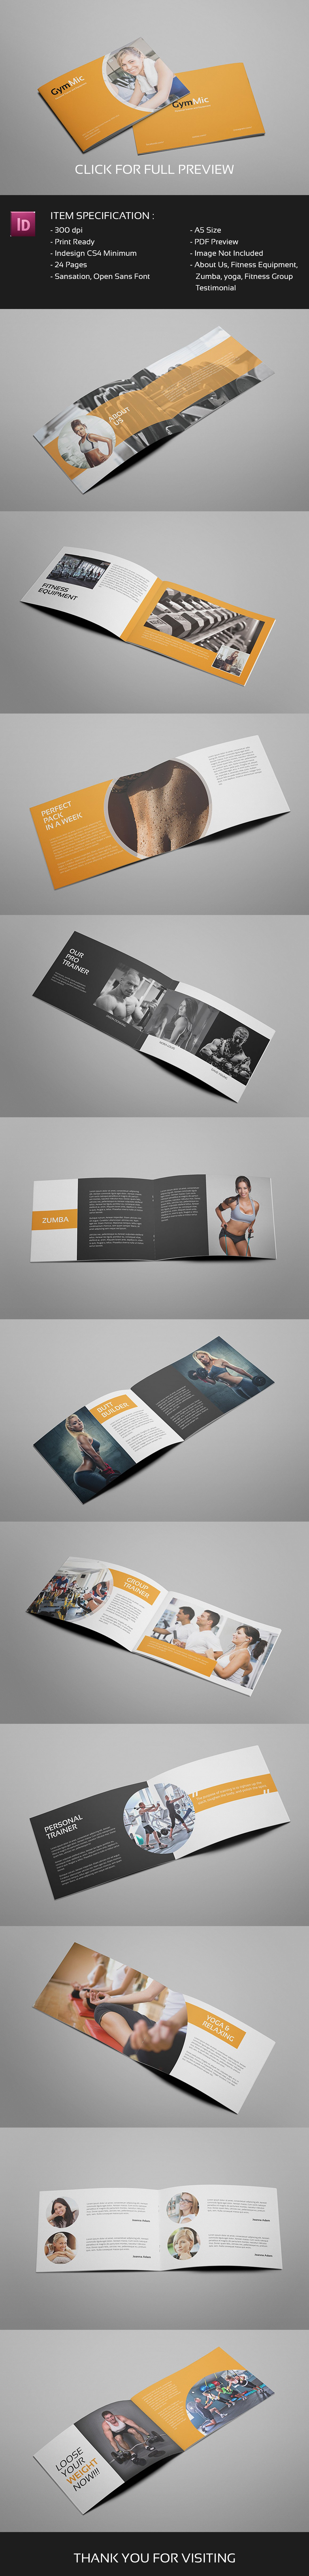 Gymmic - A5 Fitness and Gym Brochure